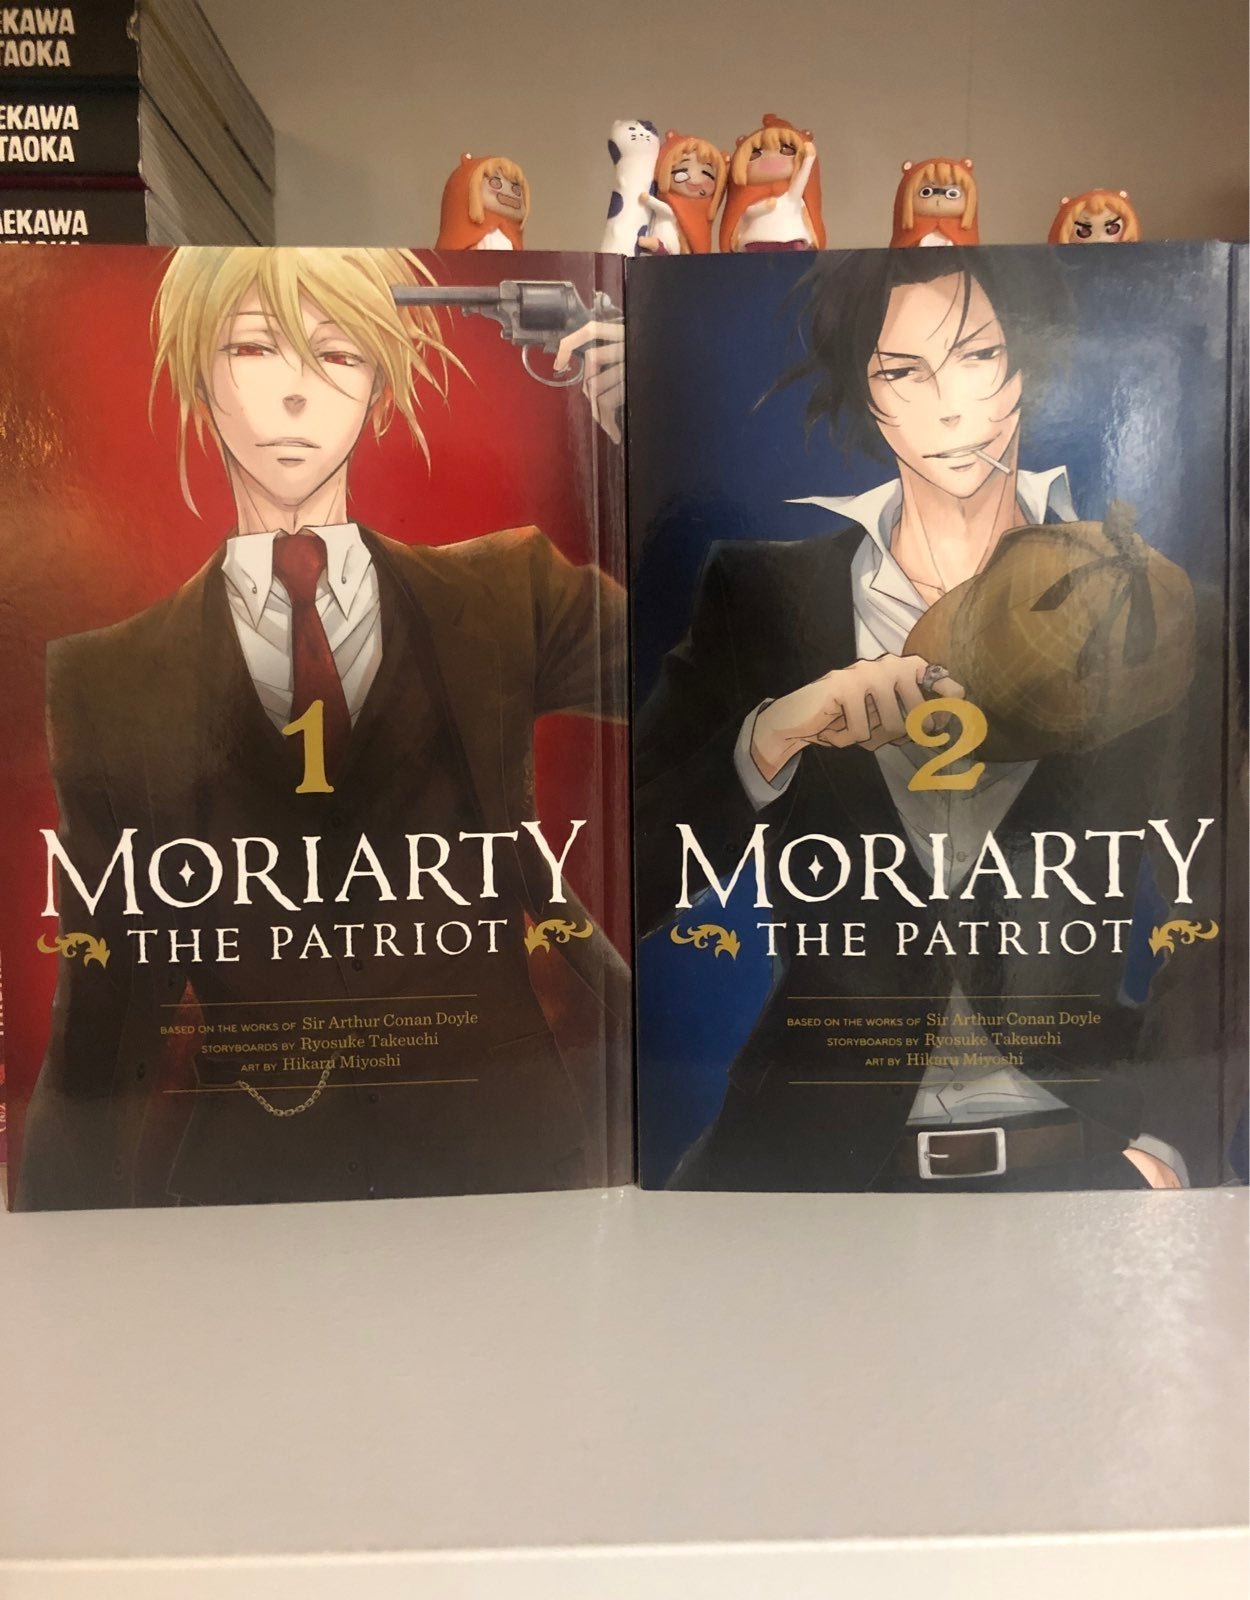 Moriarty the Patriot vols 1 and 2